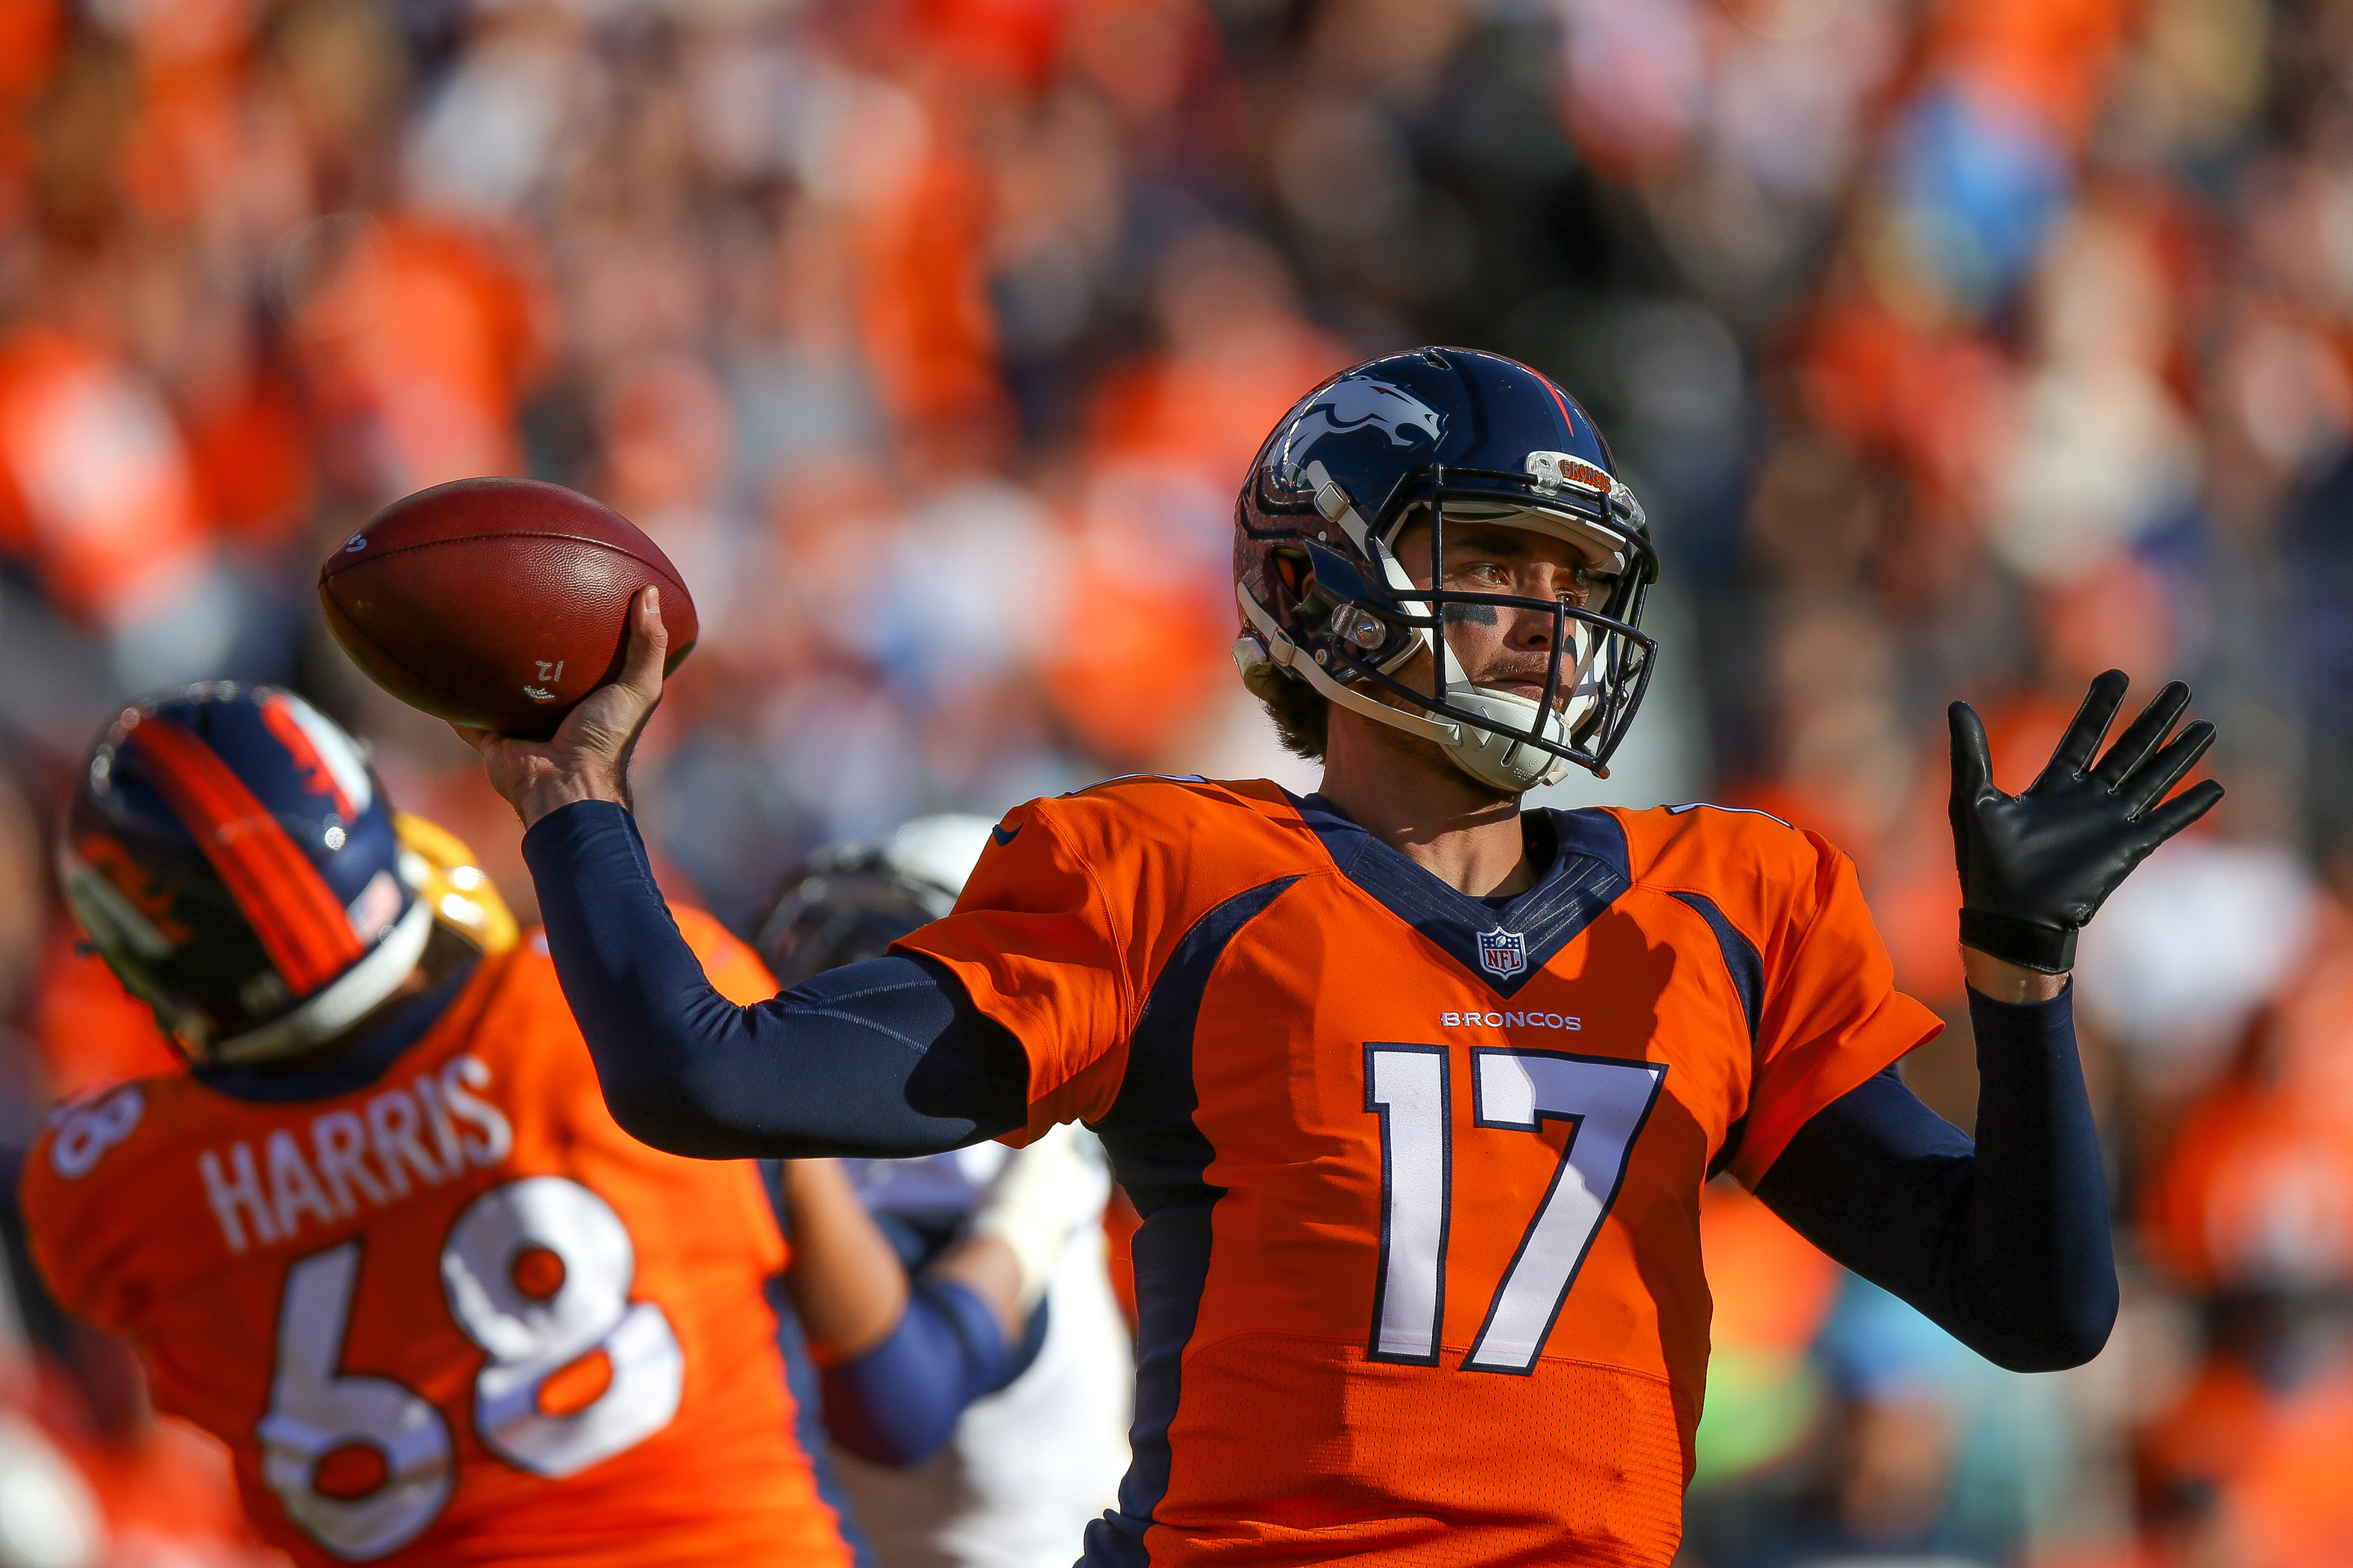 Quarterback Brock Osweiler #17 of the Denver Broncos passes against the San Diego Chargers in the first quarter of a game at Sports Authority Field at Mile High on January 3, 2016 in Denver, Colorado. (Photo by Justin Edmonds/Getty Images)